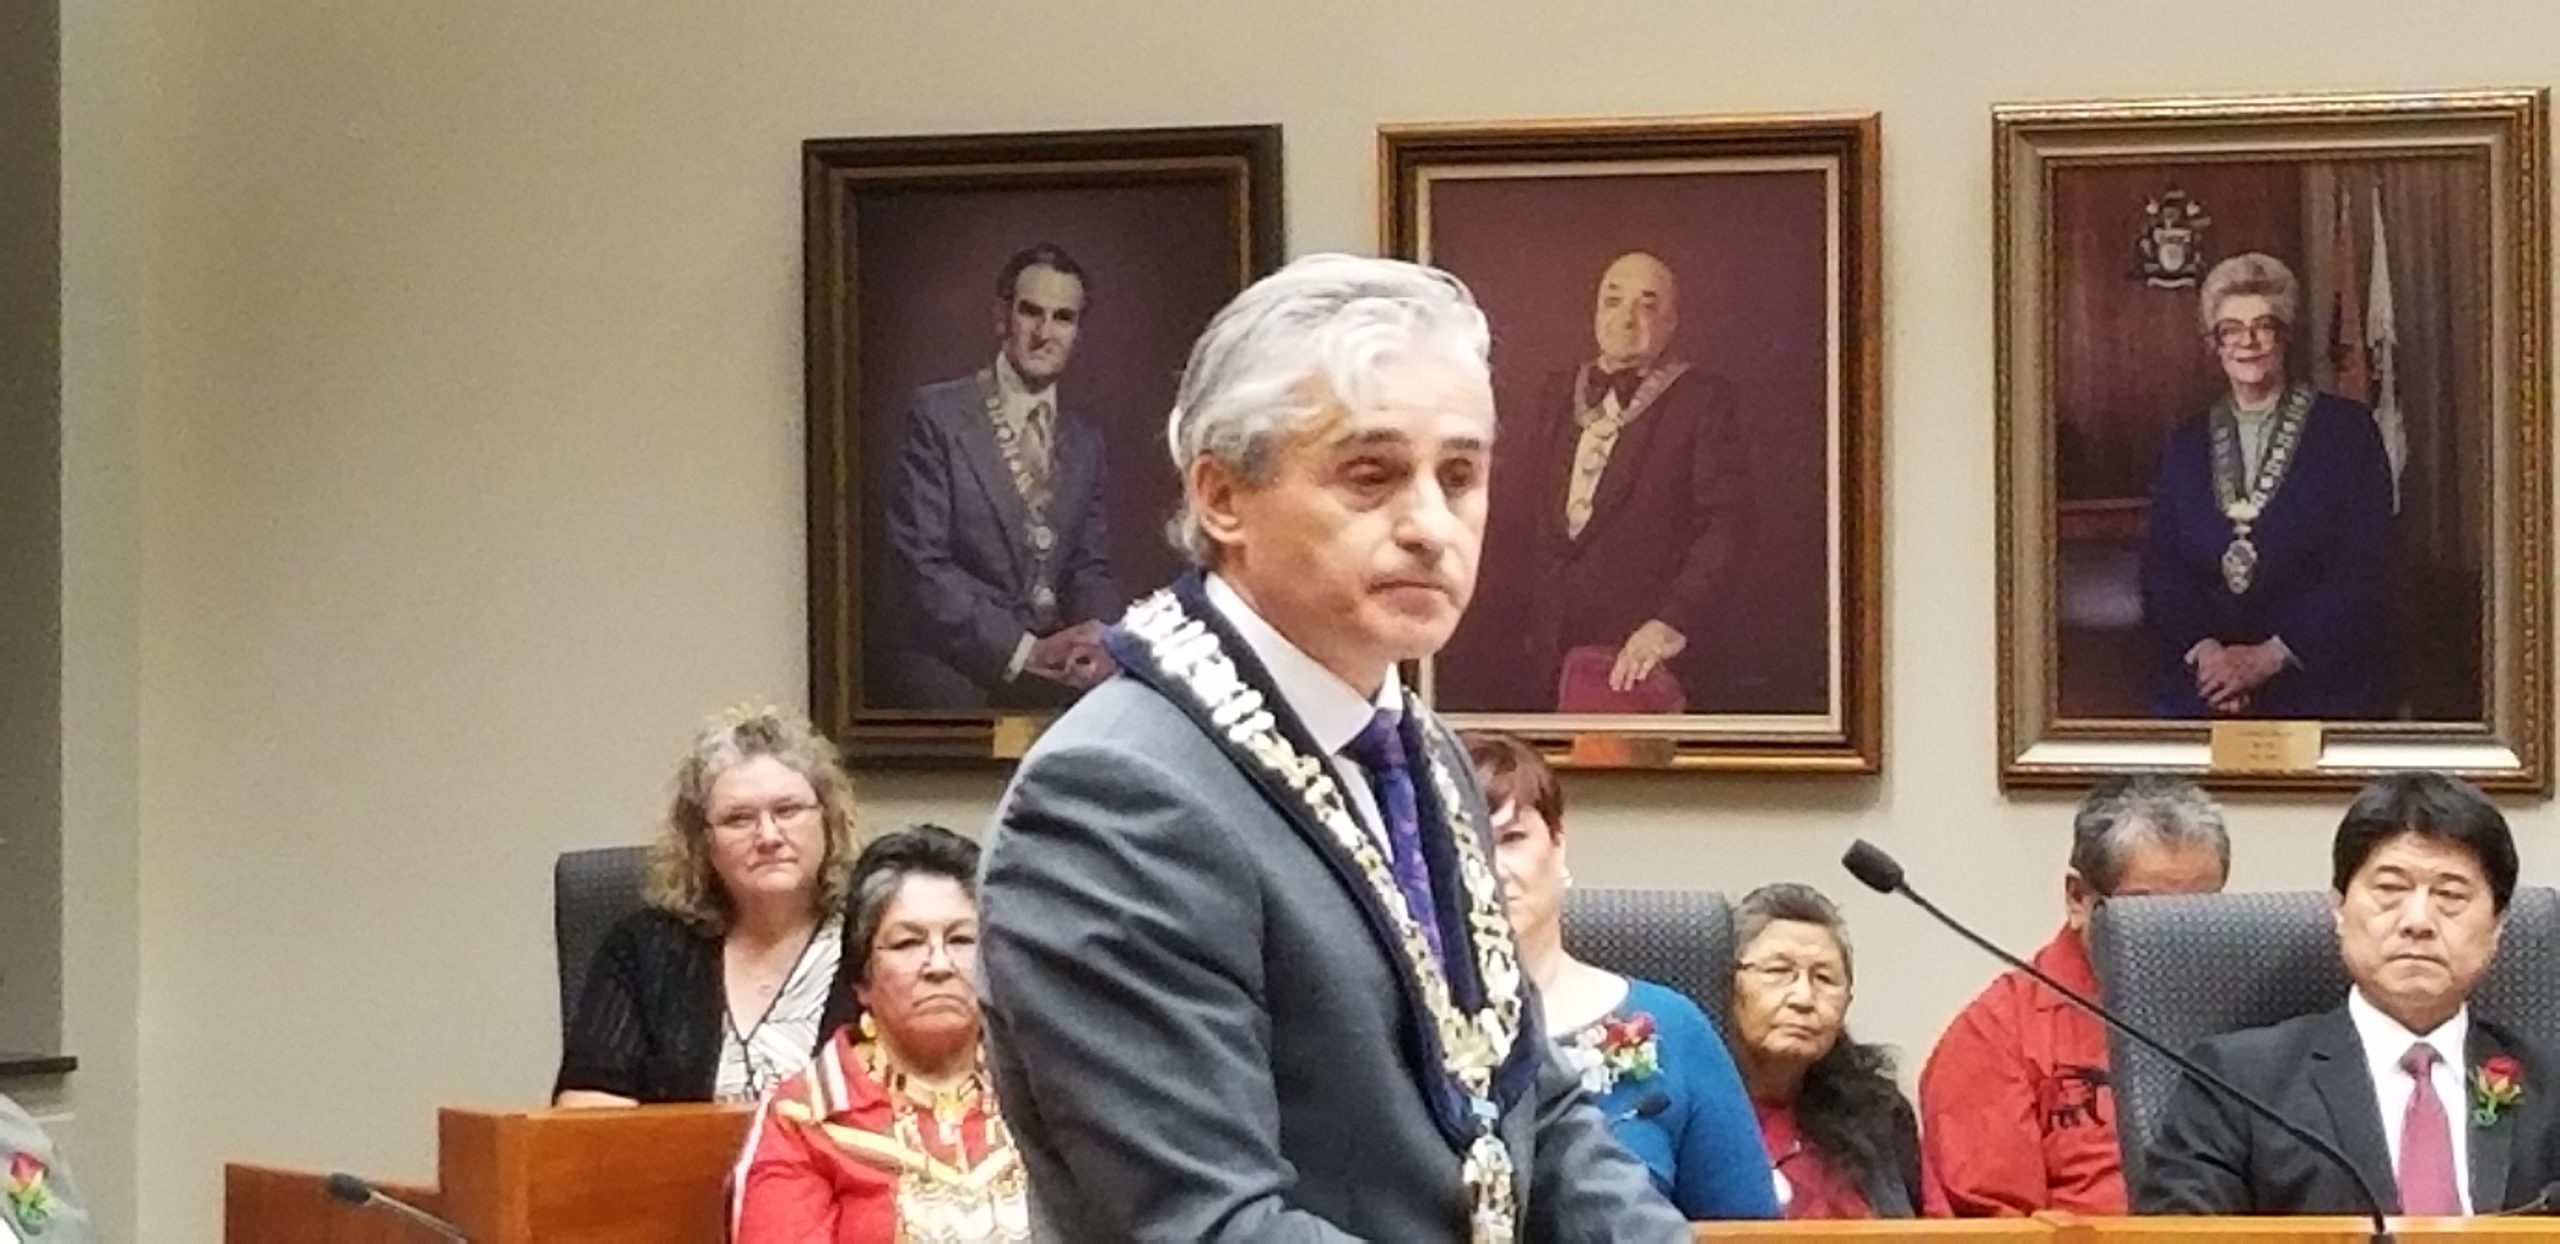 Mayor Remaining Cautious With Budget